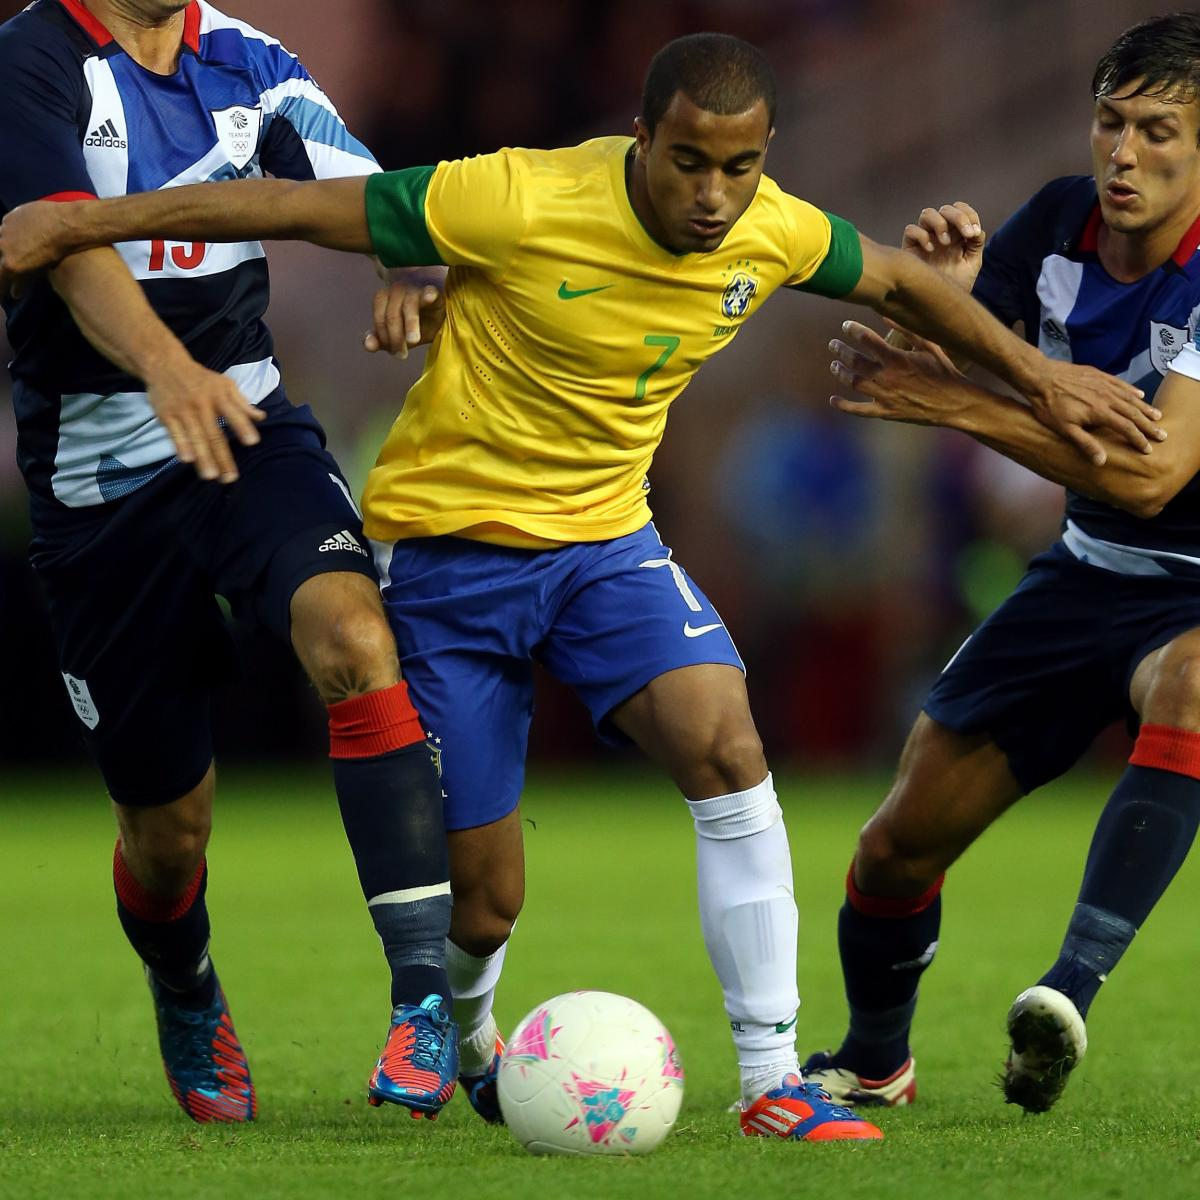 Lucas Moura In Brazil Squad: FIFA World Rankings Place Brazil 18th, Reinforce Flawed